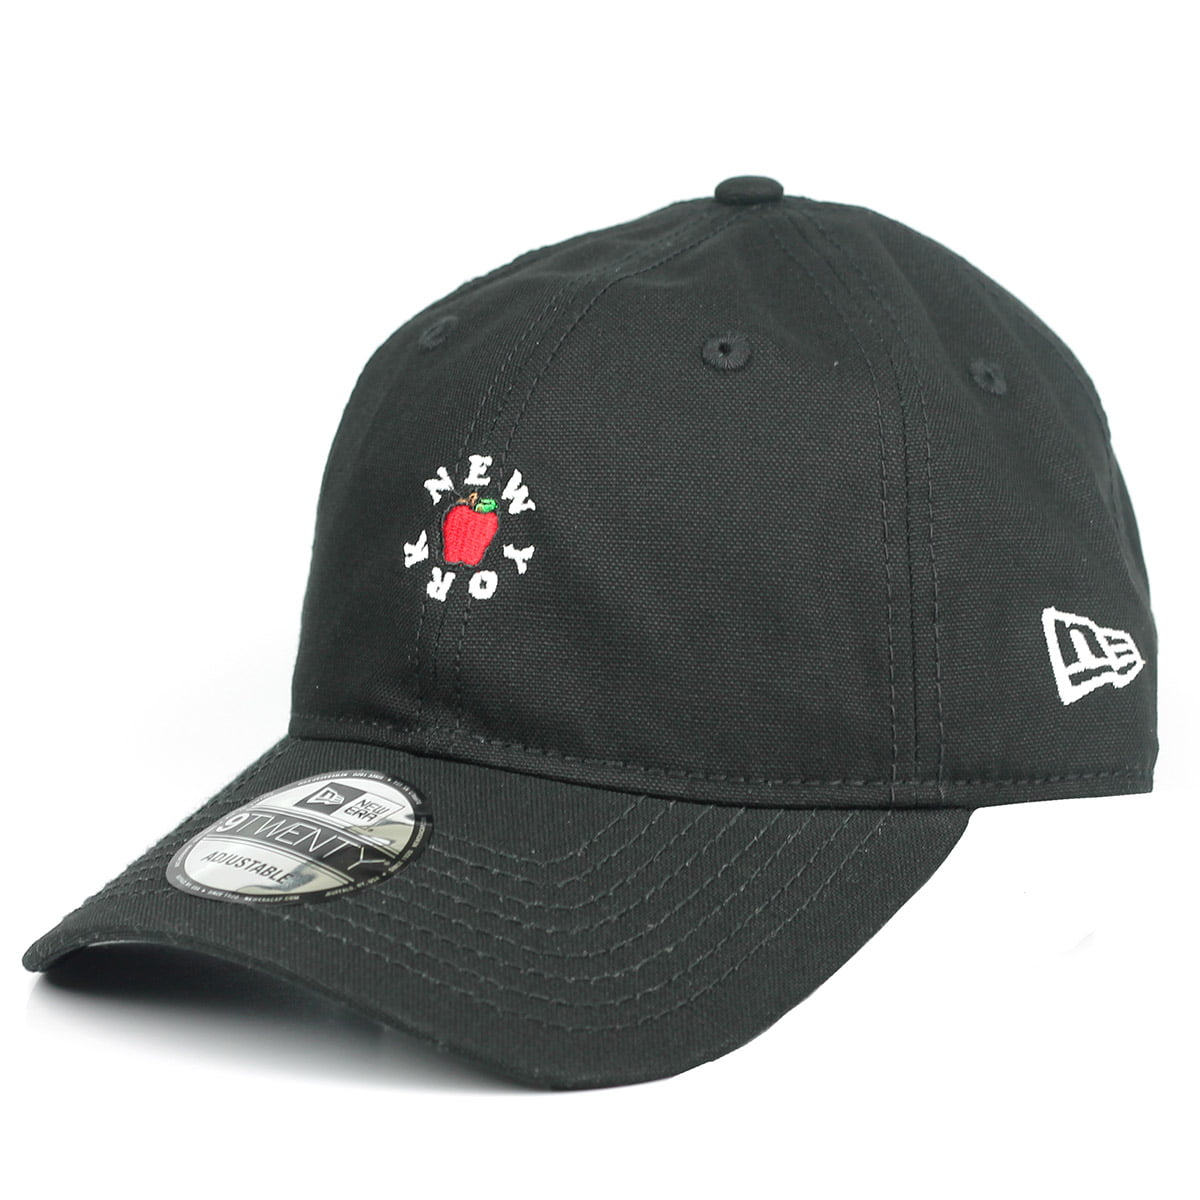 Bone New York City New Era 9twenty circle